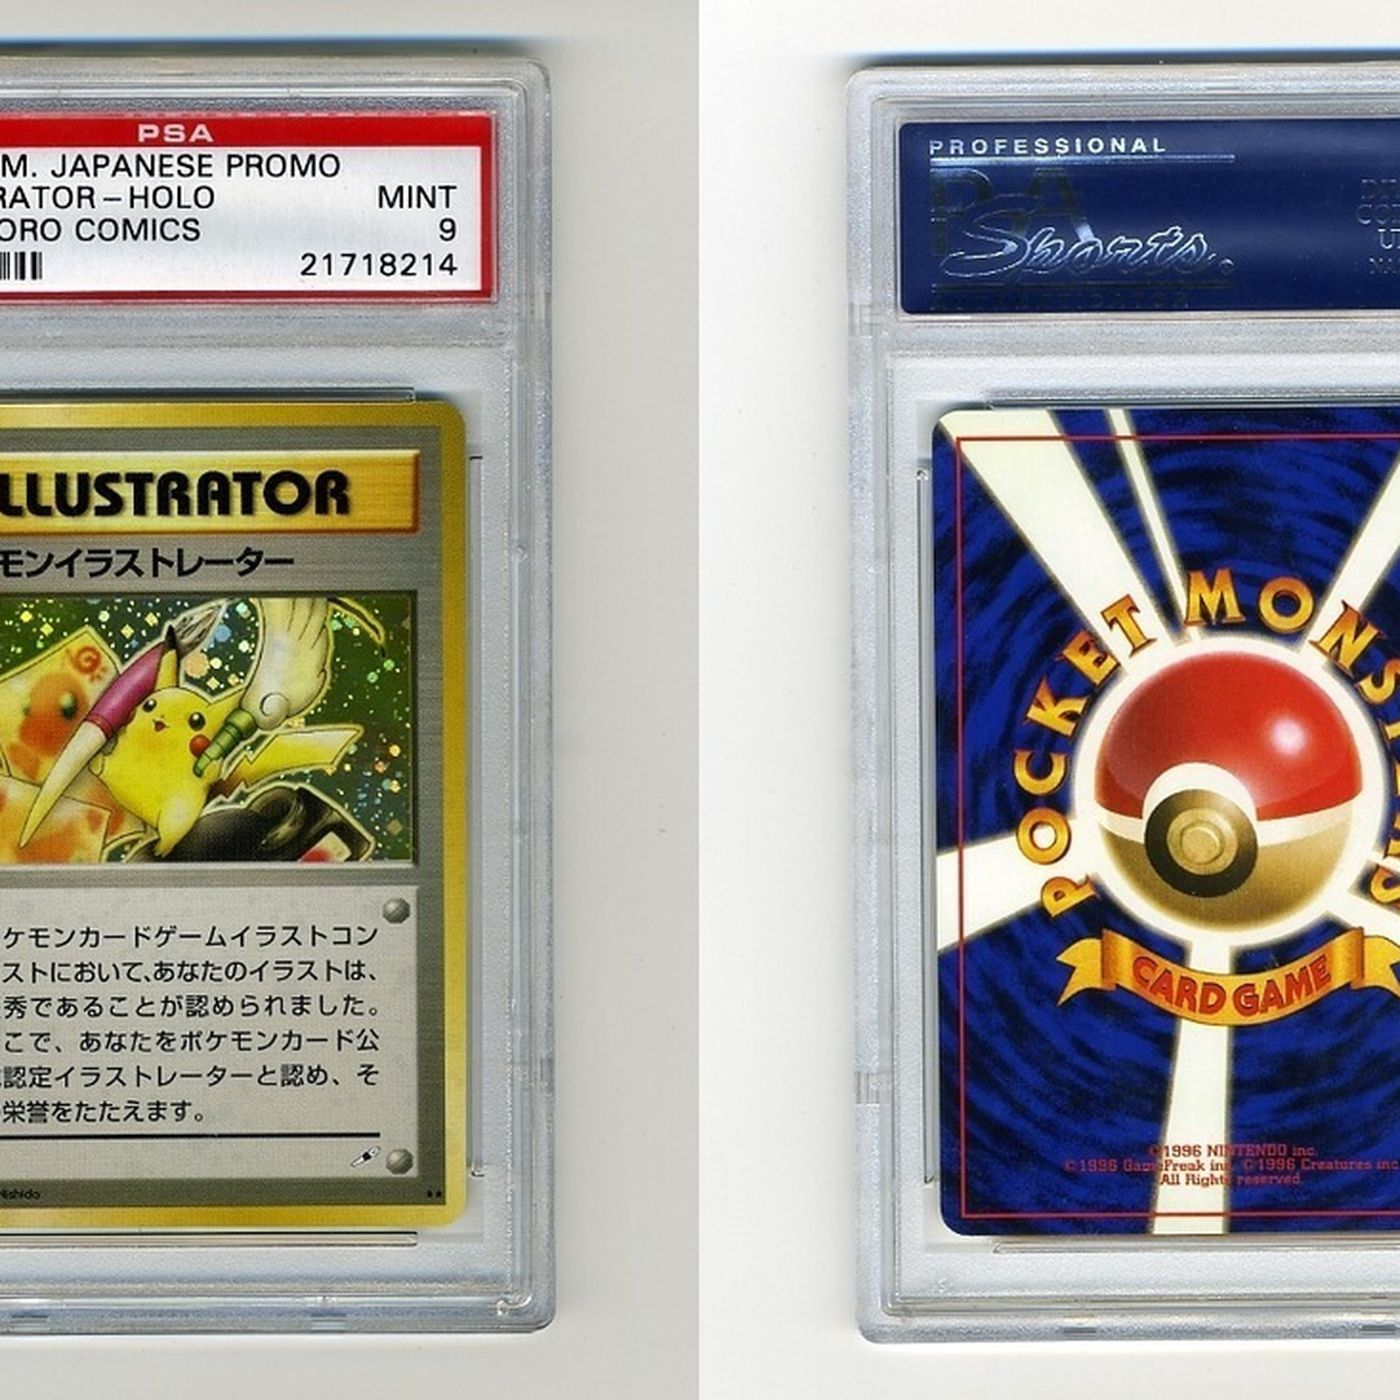 Rare Japanese Pokemon Card Up For Grabs On Ebay Polygon